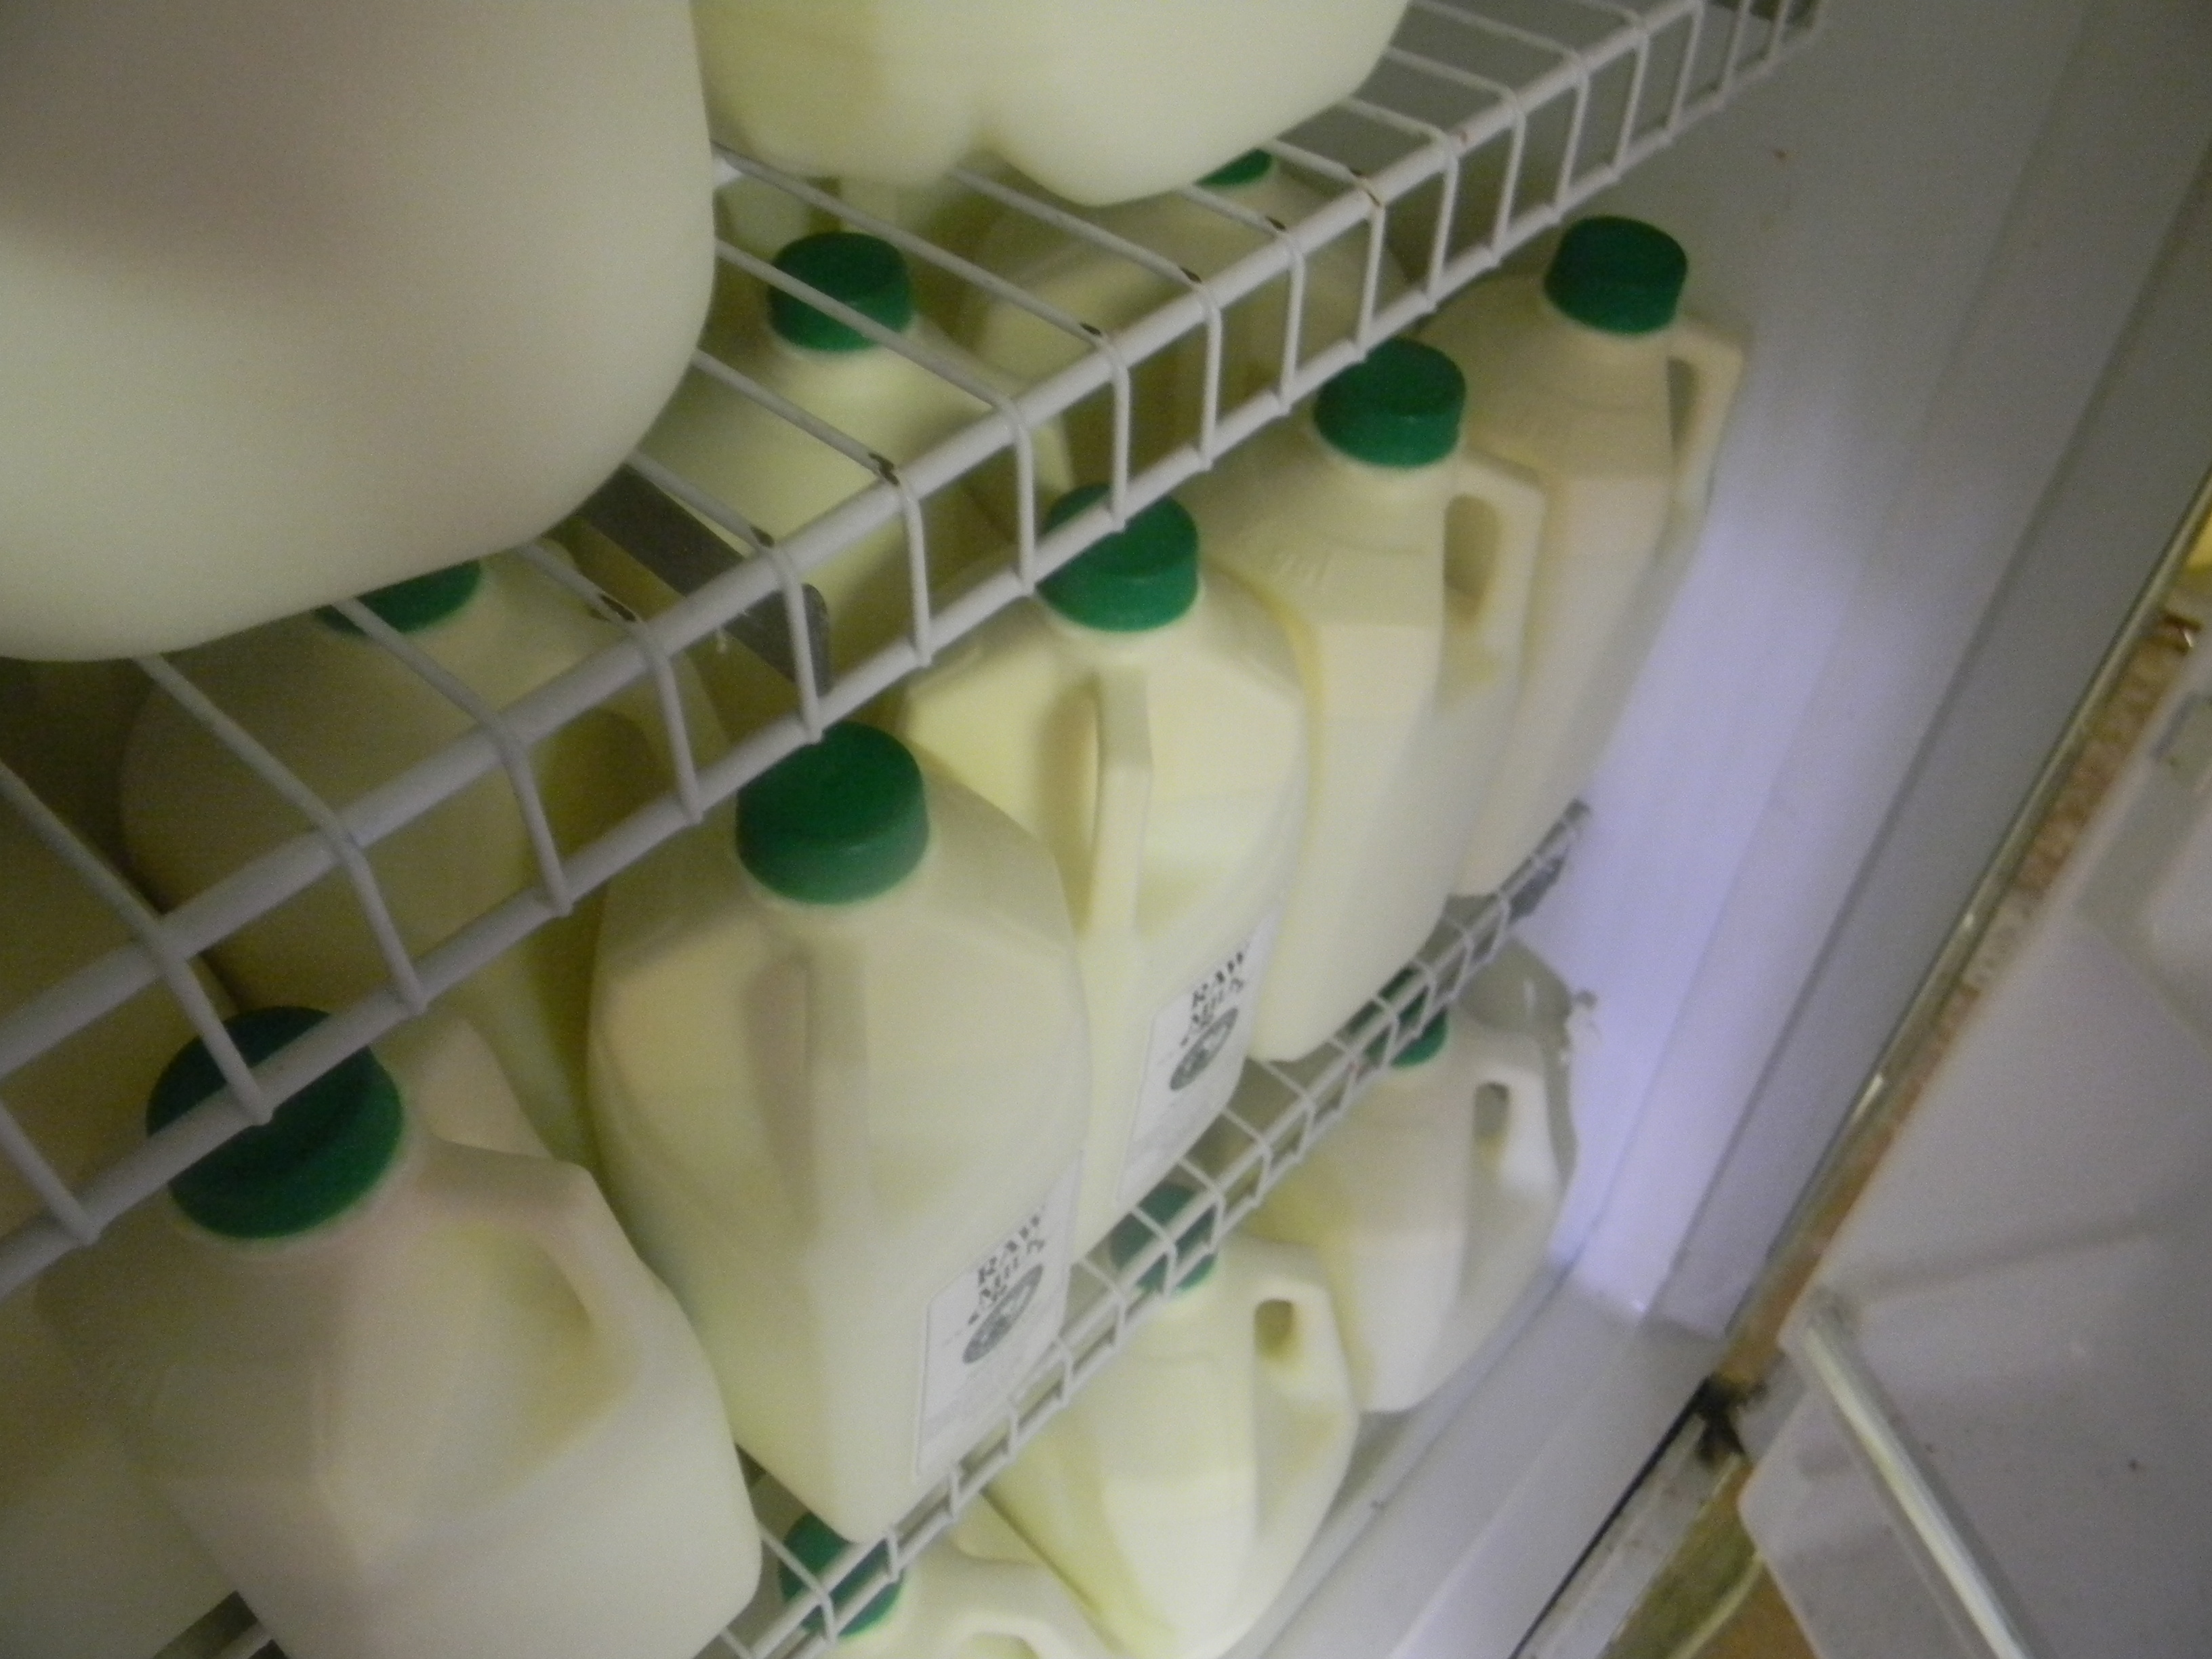 Bottled raw milk ready for sale!